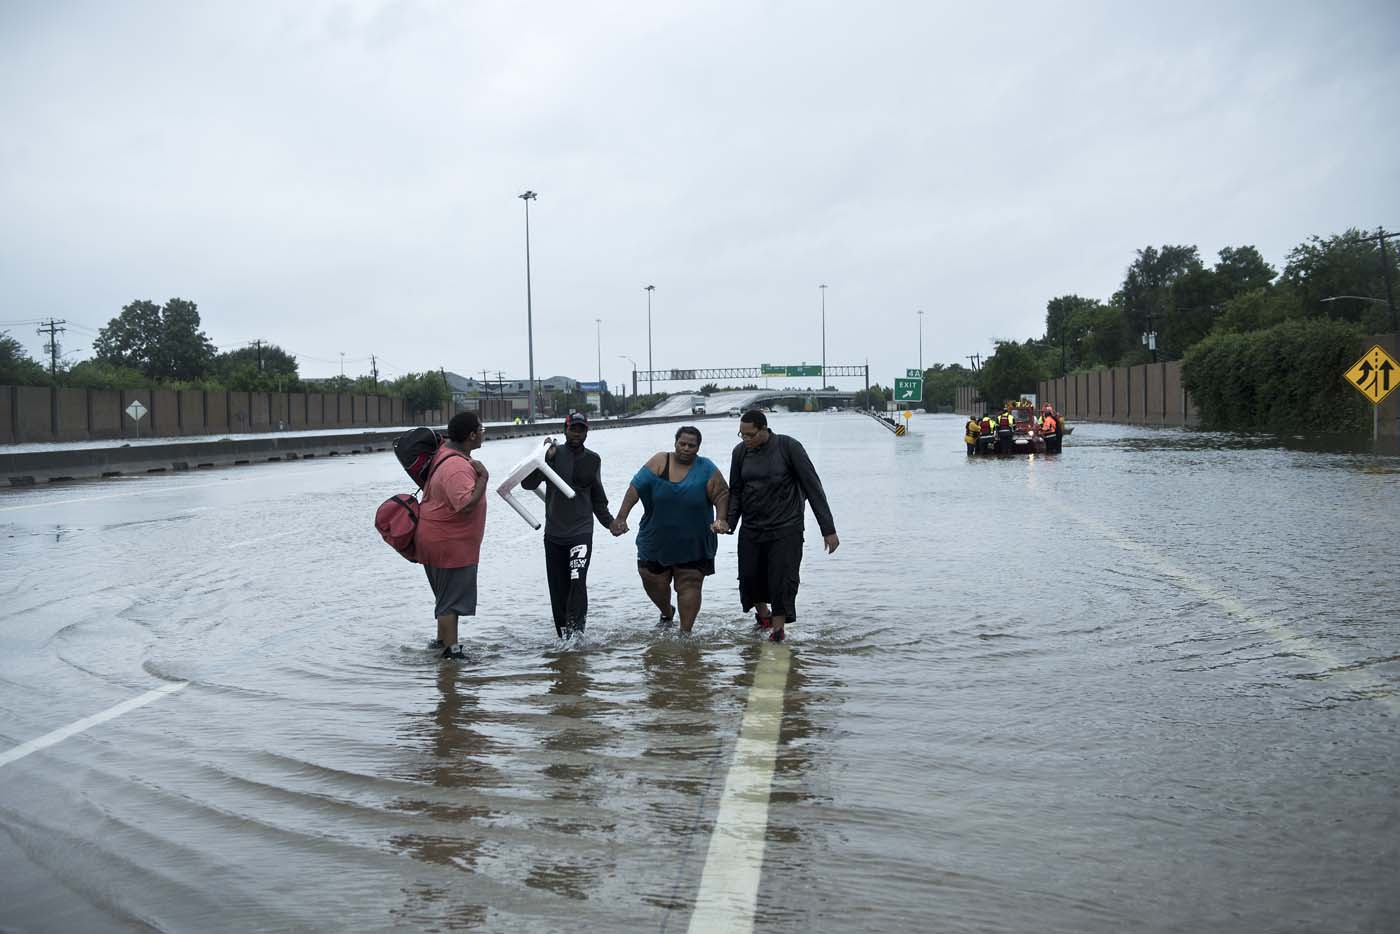 People make their way onto an I-610 overpass after being rescued from flooded homes during the aftermath of Hurricane Harvey August 27, 2017 in Houston, Texas. Hurricane Harvey left a trail of devastation after the most powerful storm to hit the US mainland in over a decade slammed into Texas, destroying homes, severing power supplies and forcing tens of thousands of residents to flee. / AFP PHOTO / Brendan Smialowski